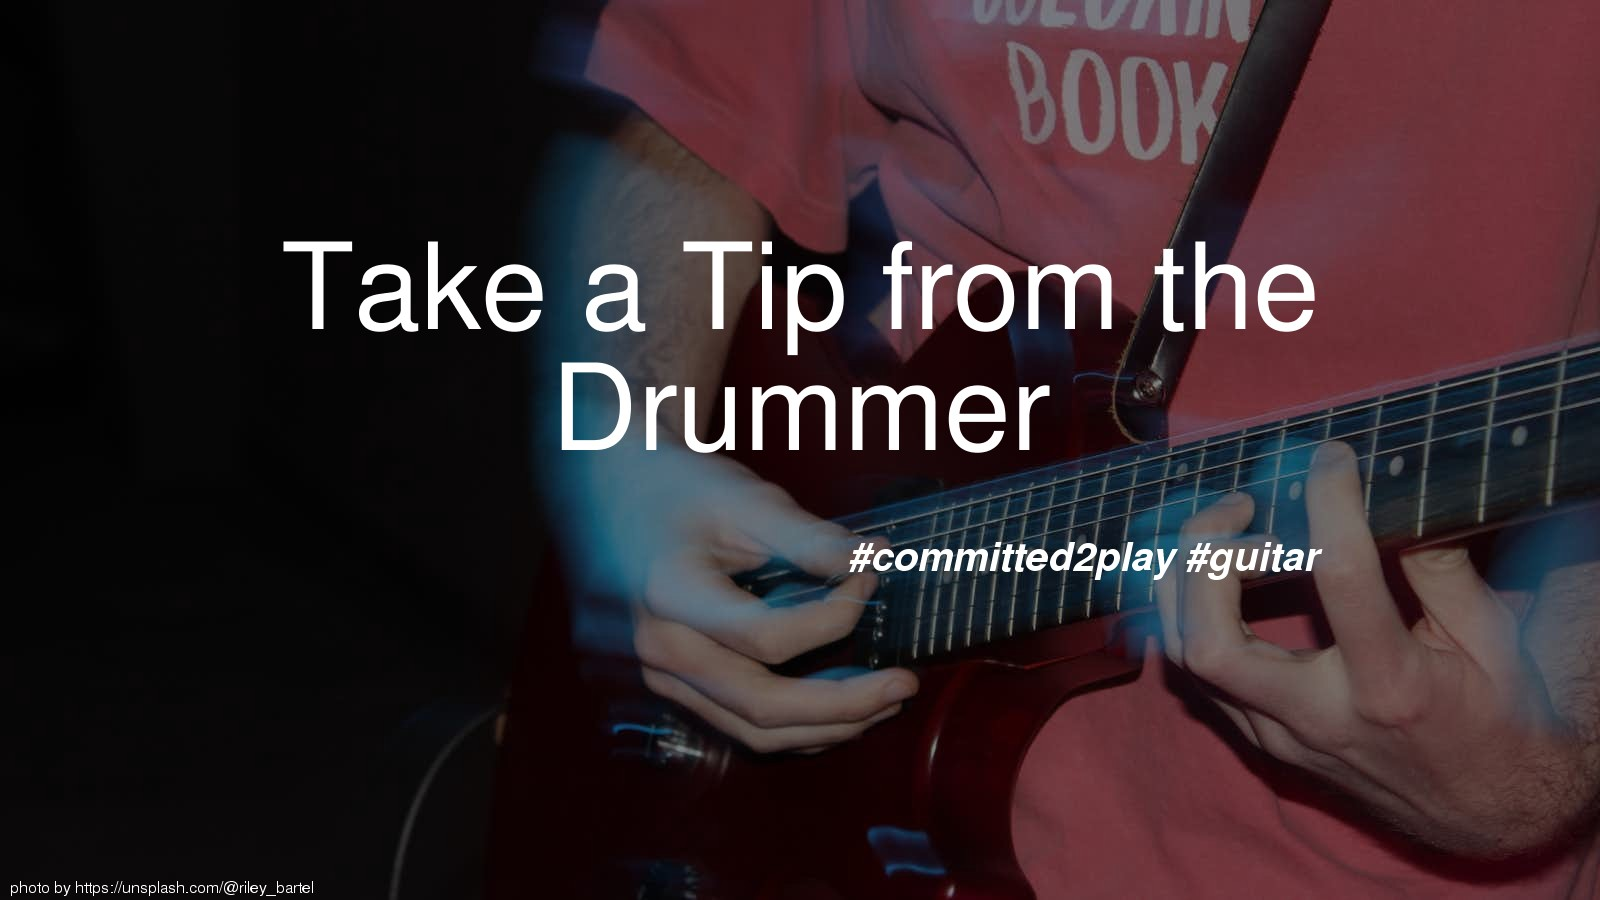 Take a Tip from the Drummer